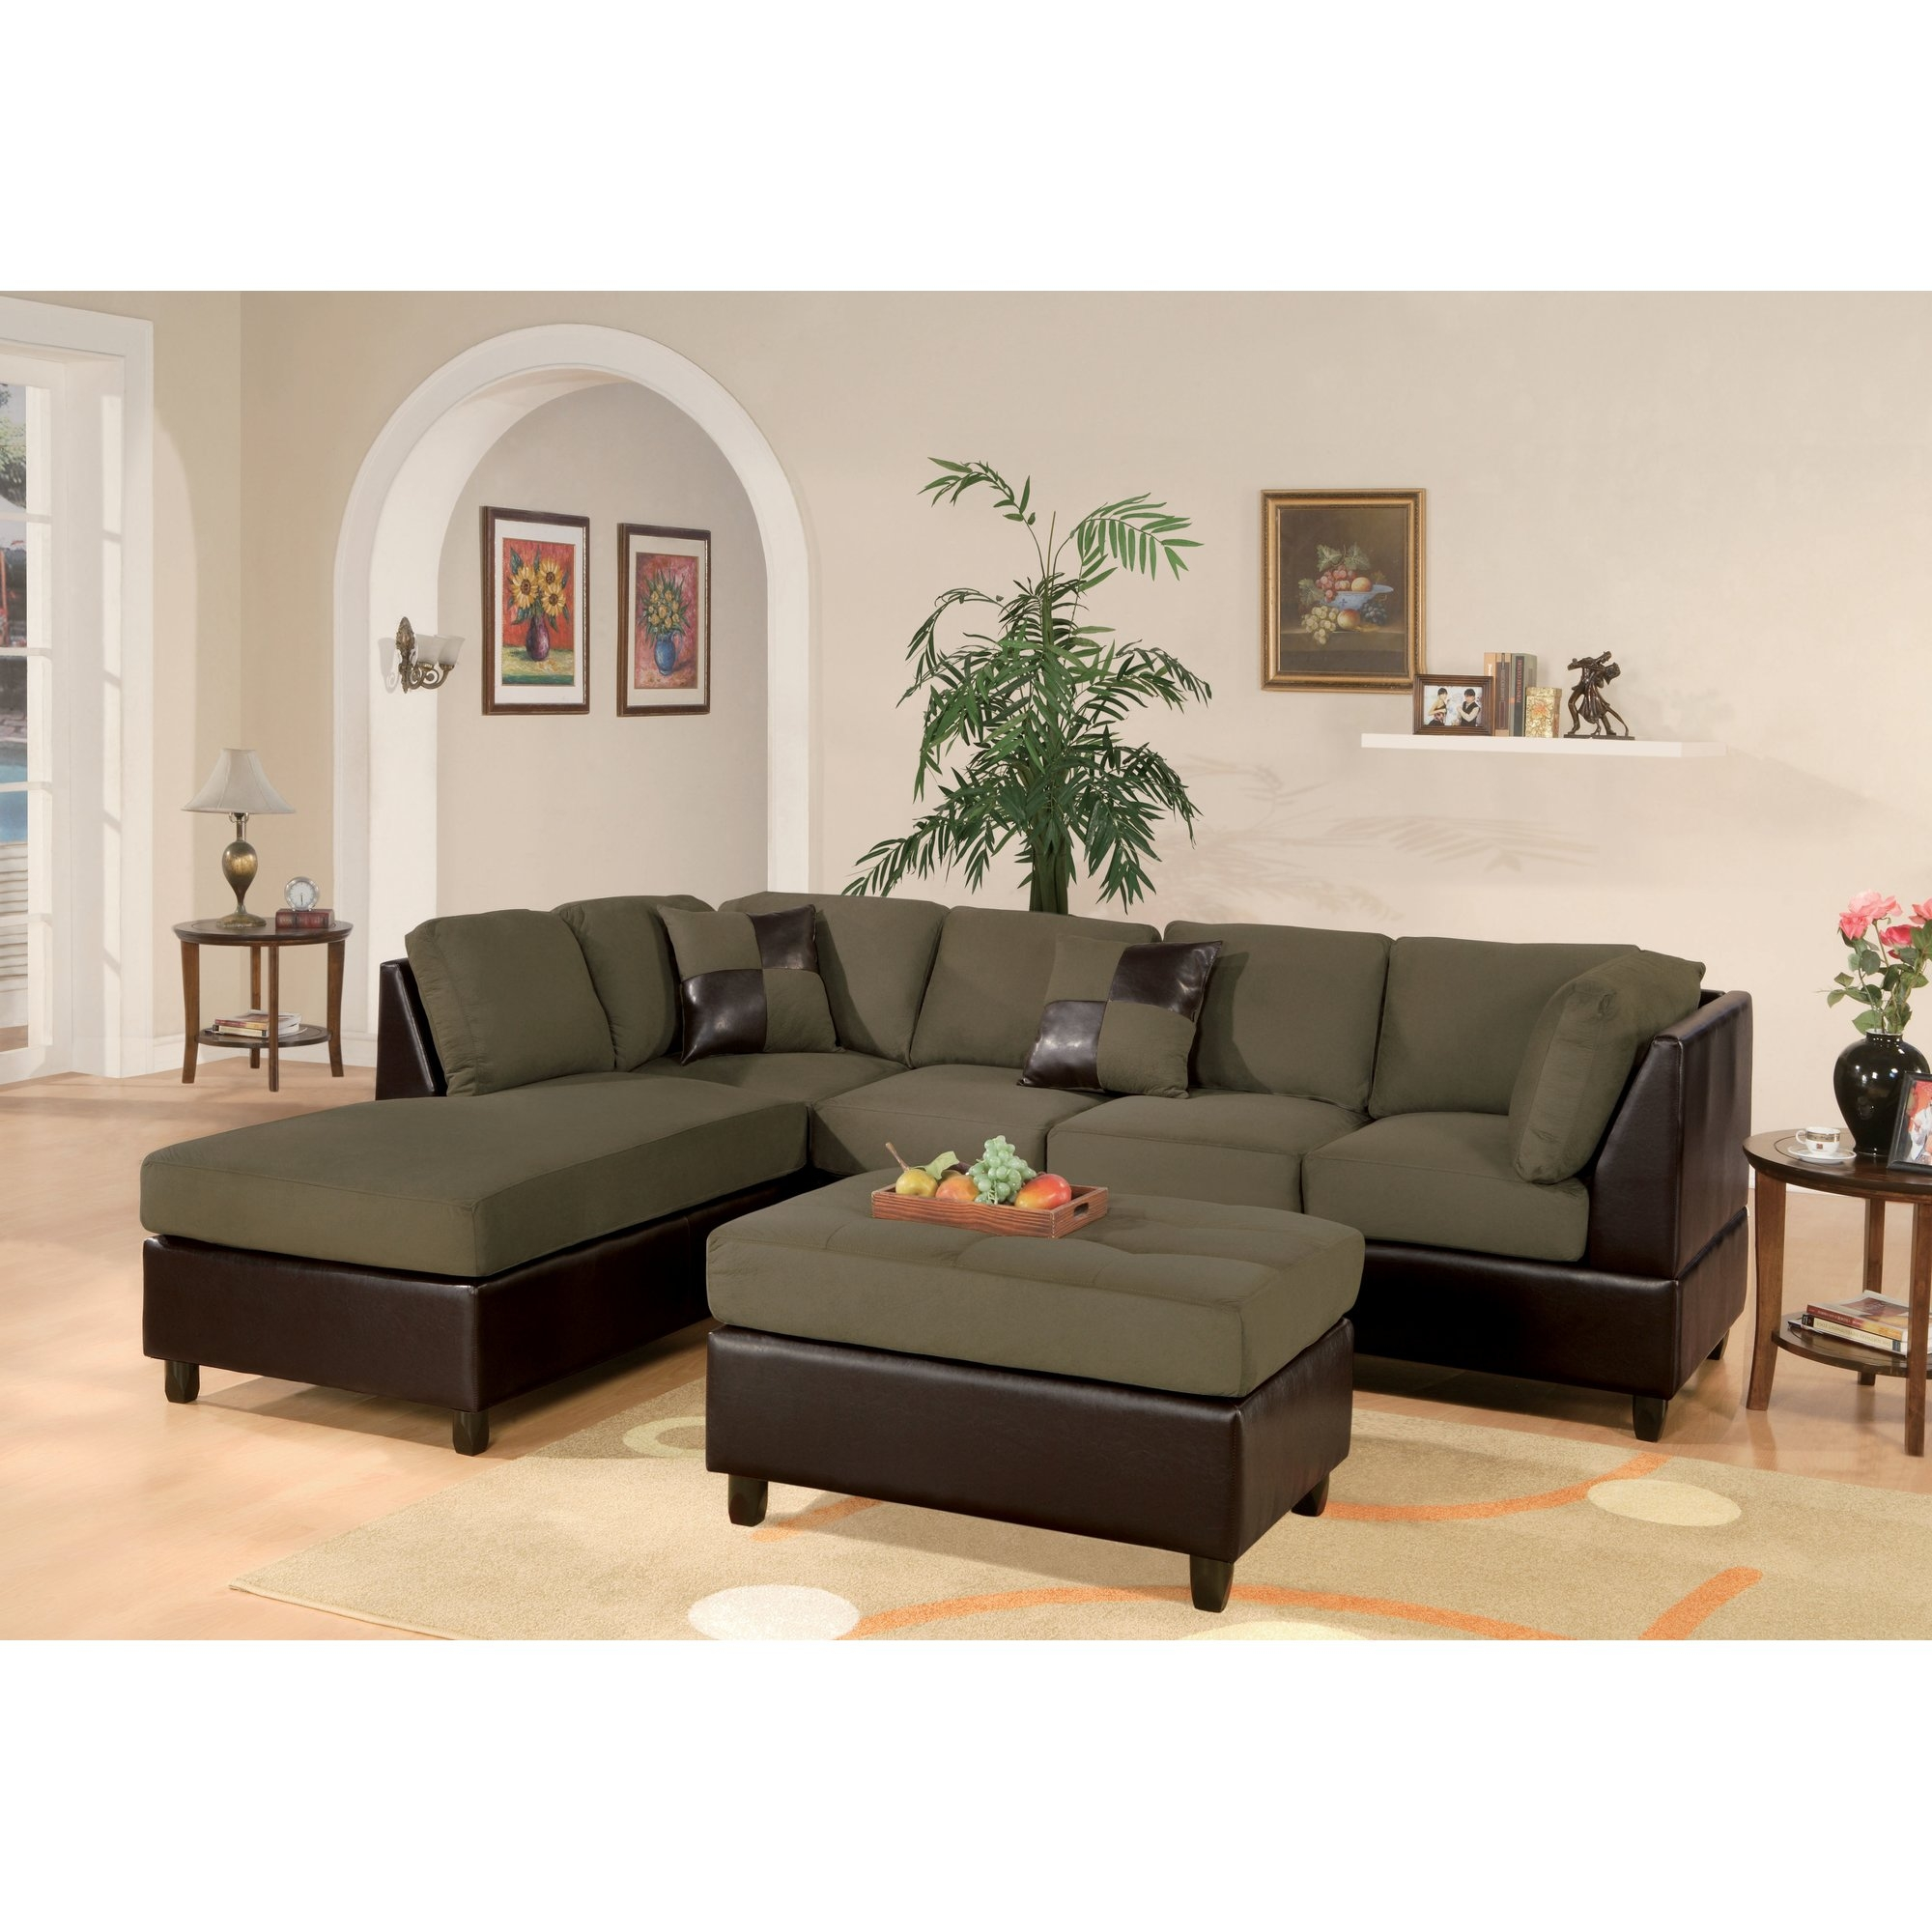 15 Best Collection of Contemporary Black Leather Sectional Sofa